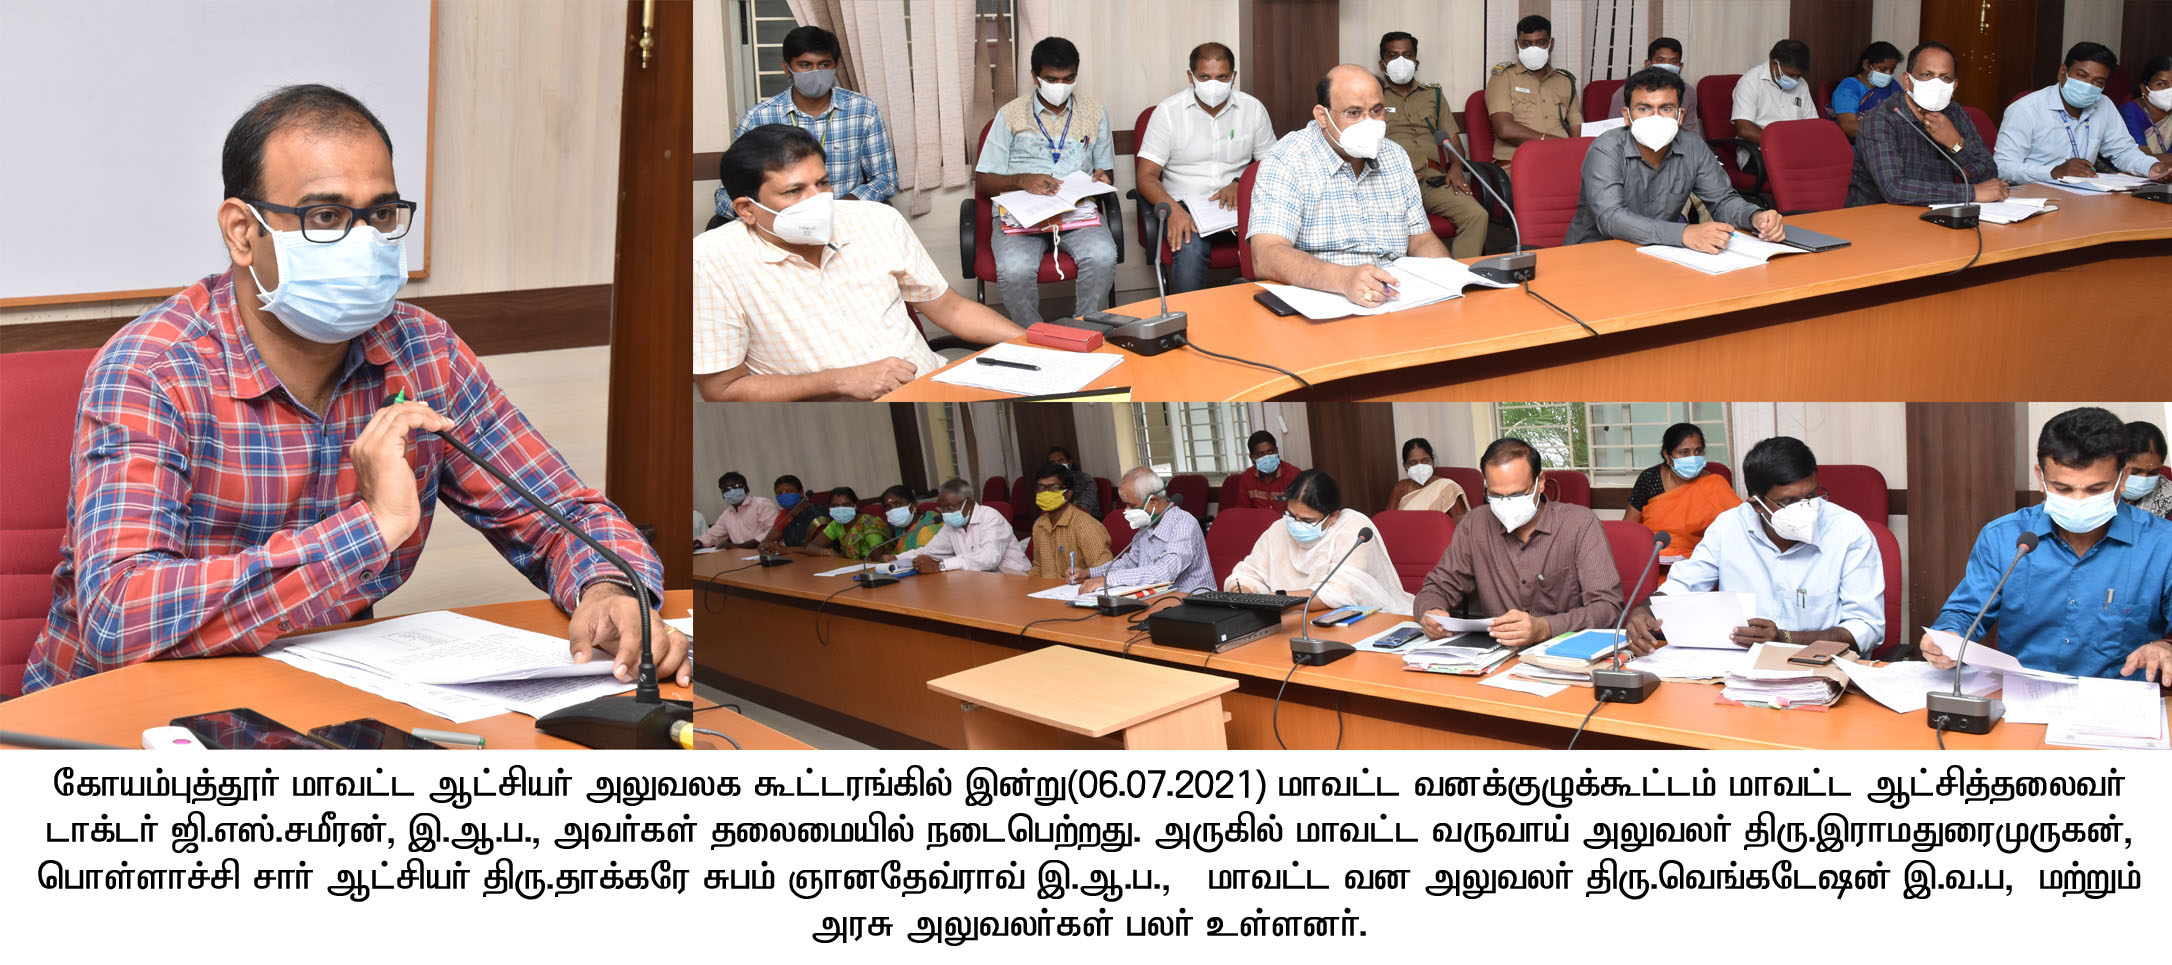 District Forest Committee meeting conducted by the District Collector